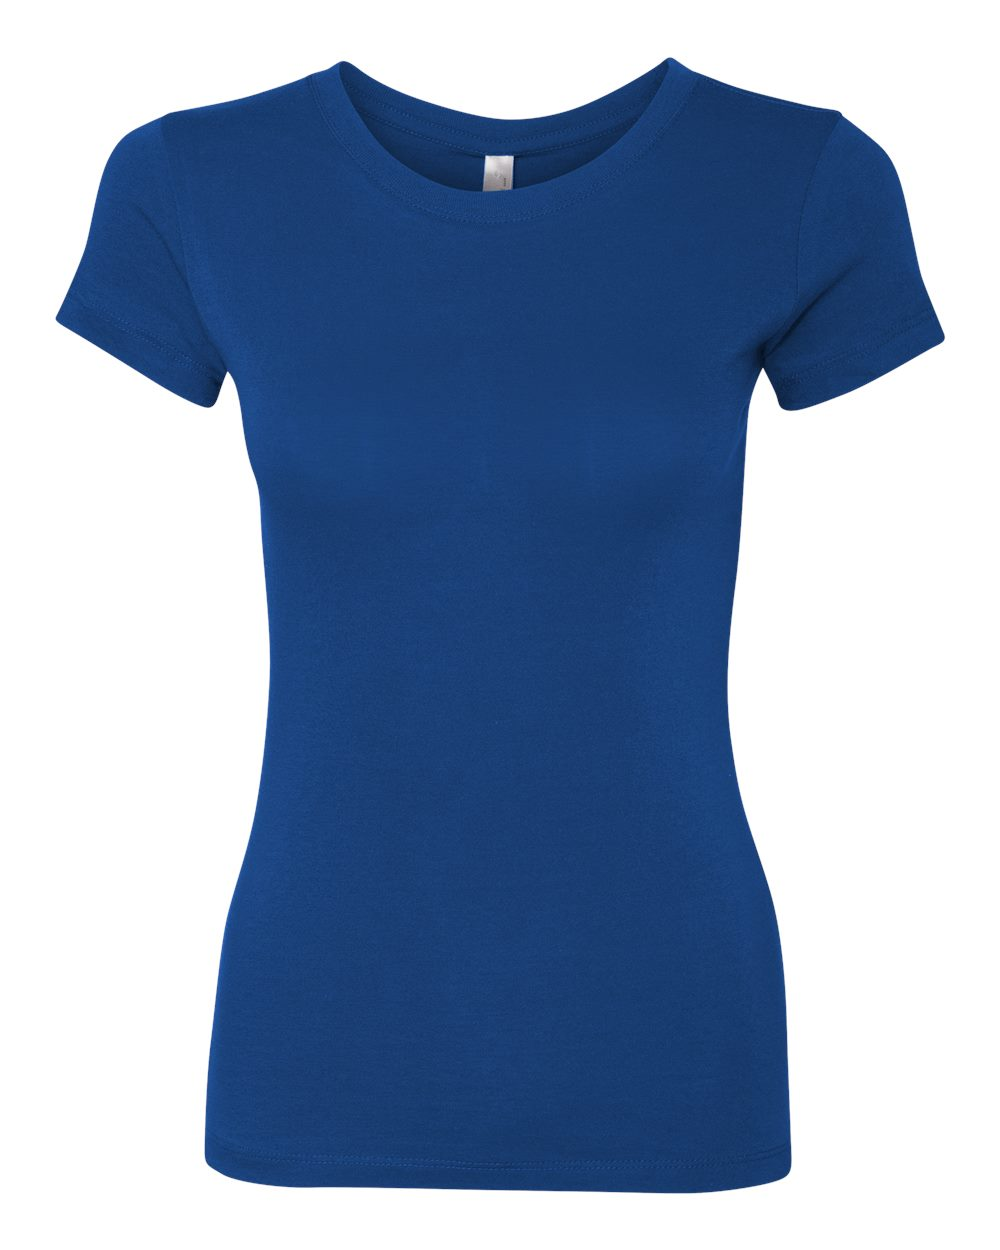 Next_Level_3300L_Royal_Blue_Front_High.jpg